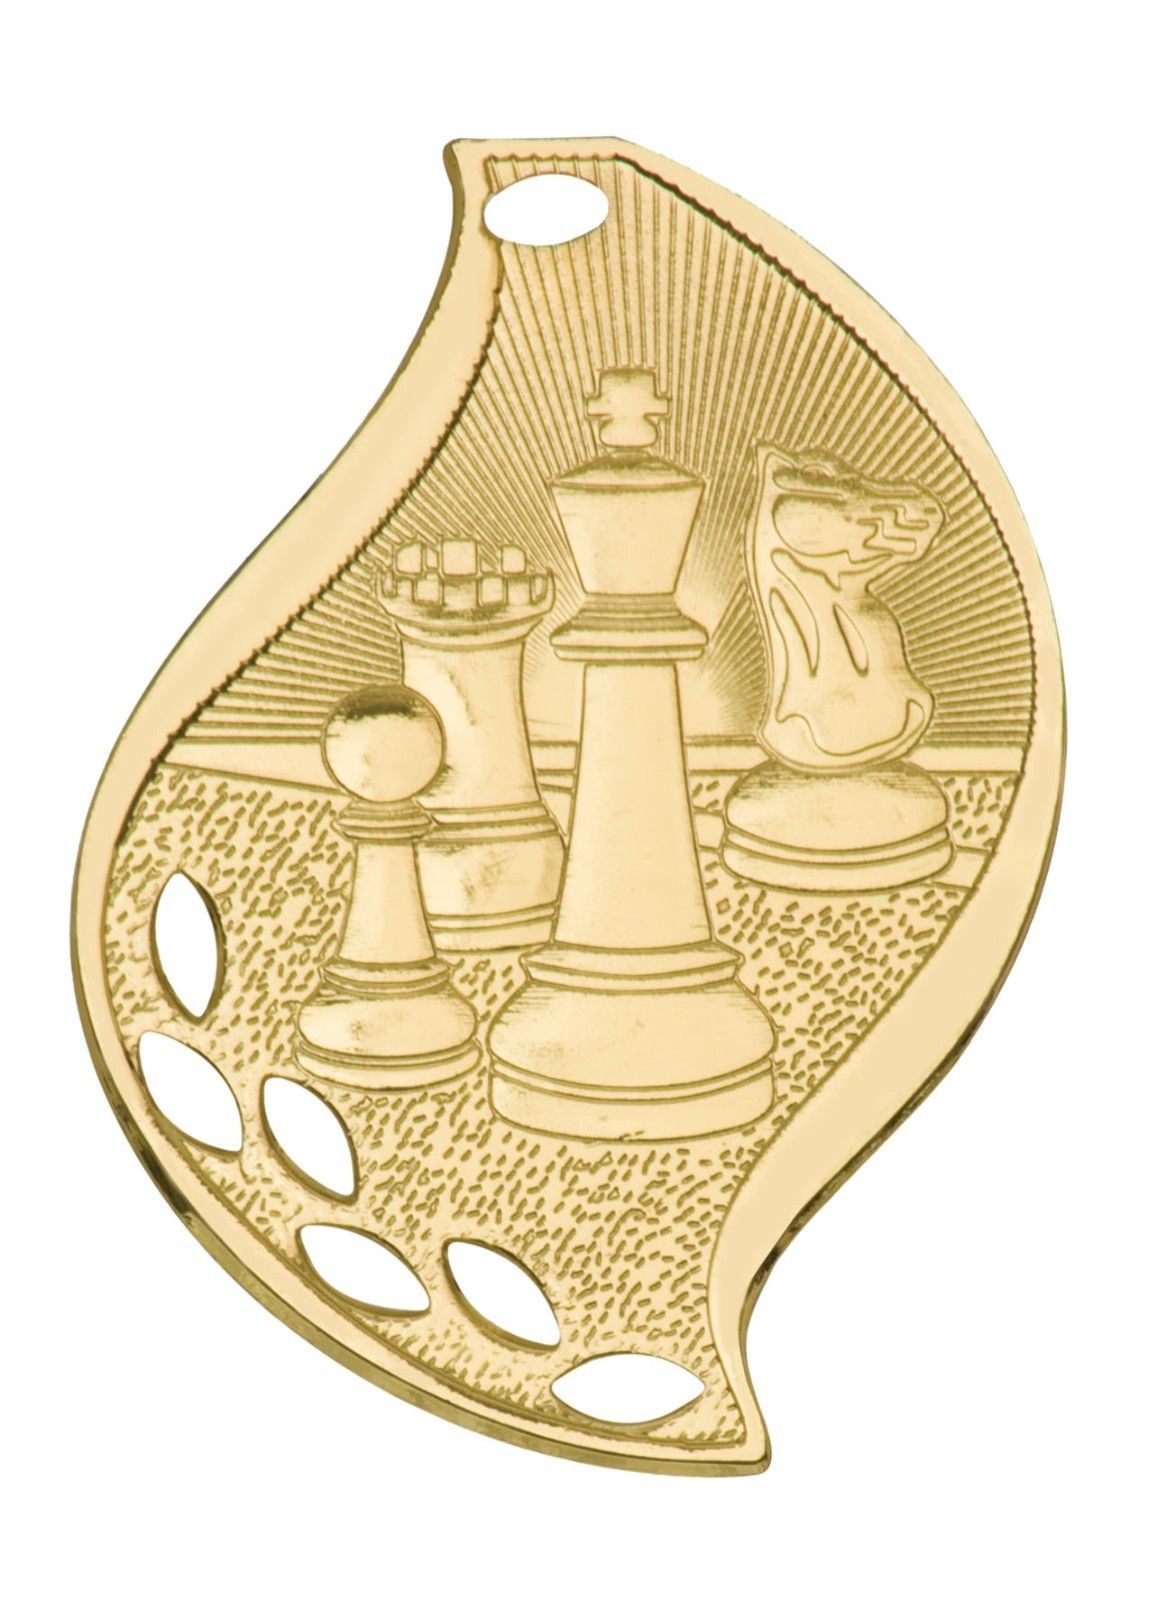 Chess Medal Award Trophy With Free Lanyard FM203 School Team Sports - $0.99 - $159.00